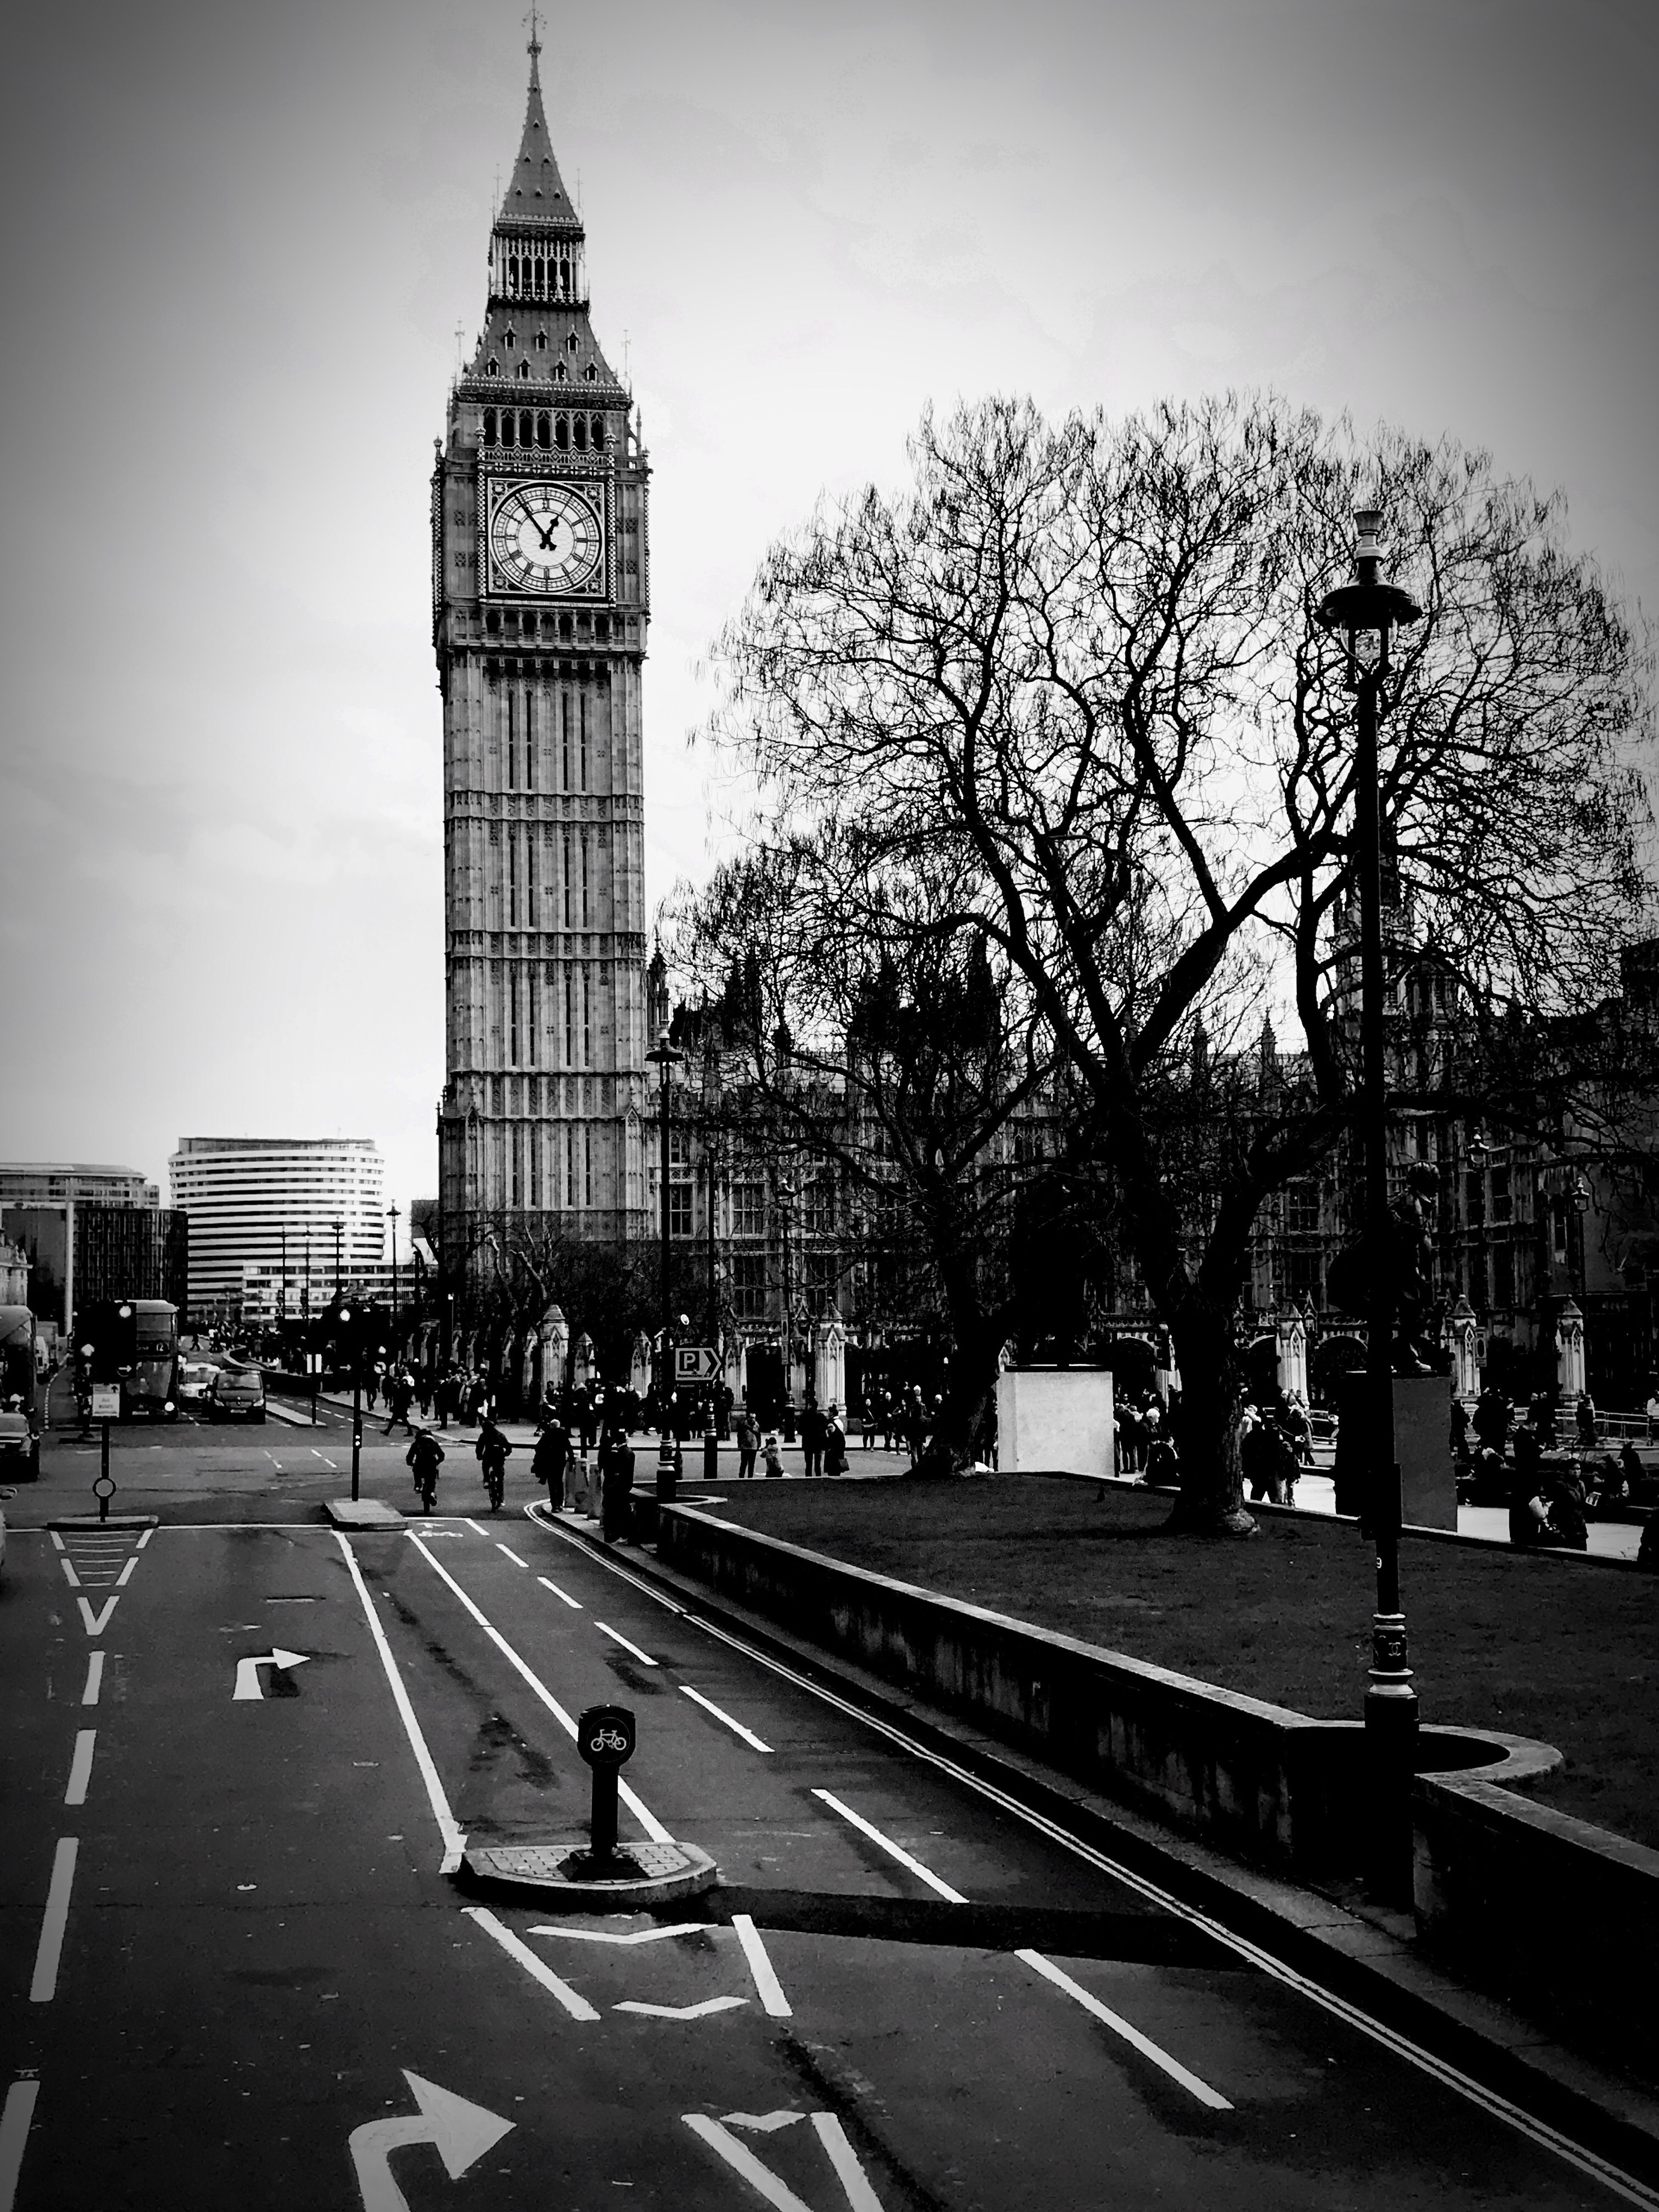 The love of london